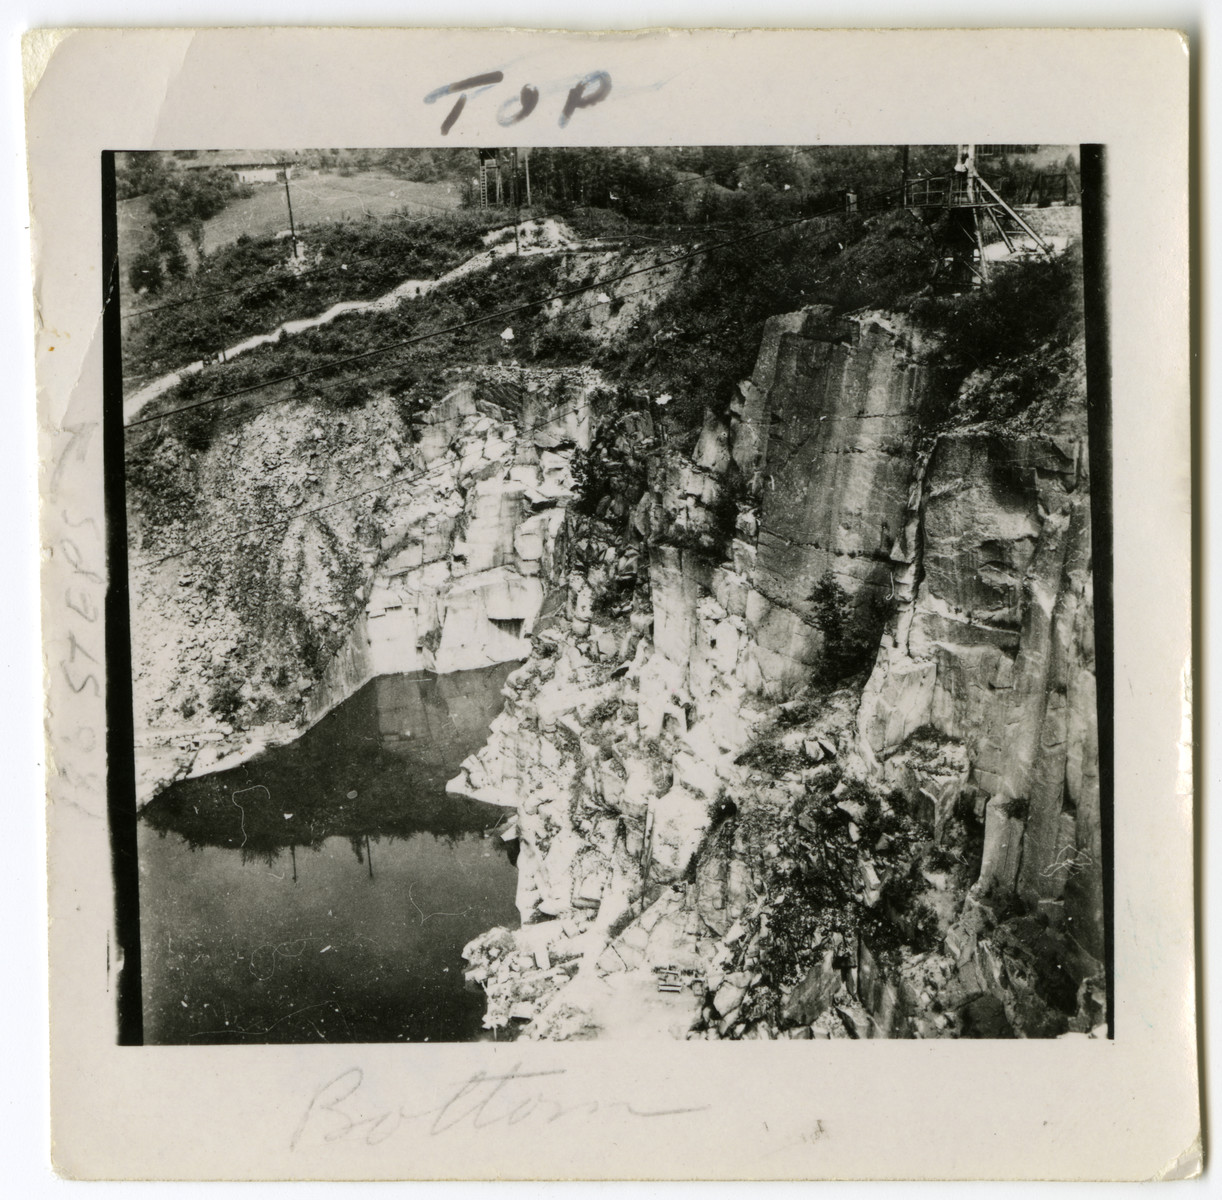 "View of the stone quarry where prisoners carried heavy stones up a tall stairwell.  Original caption reads: ""This is the 186 steps Nazis made prisoners half starved carry heavy loads up that white path on the left.  If they couldn't make it they whipped them.  The cliff is where they pushed them off."""